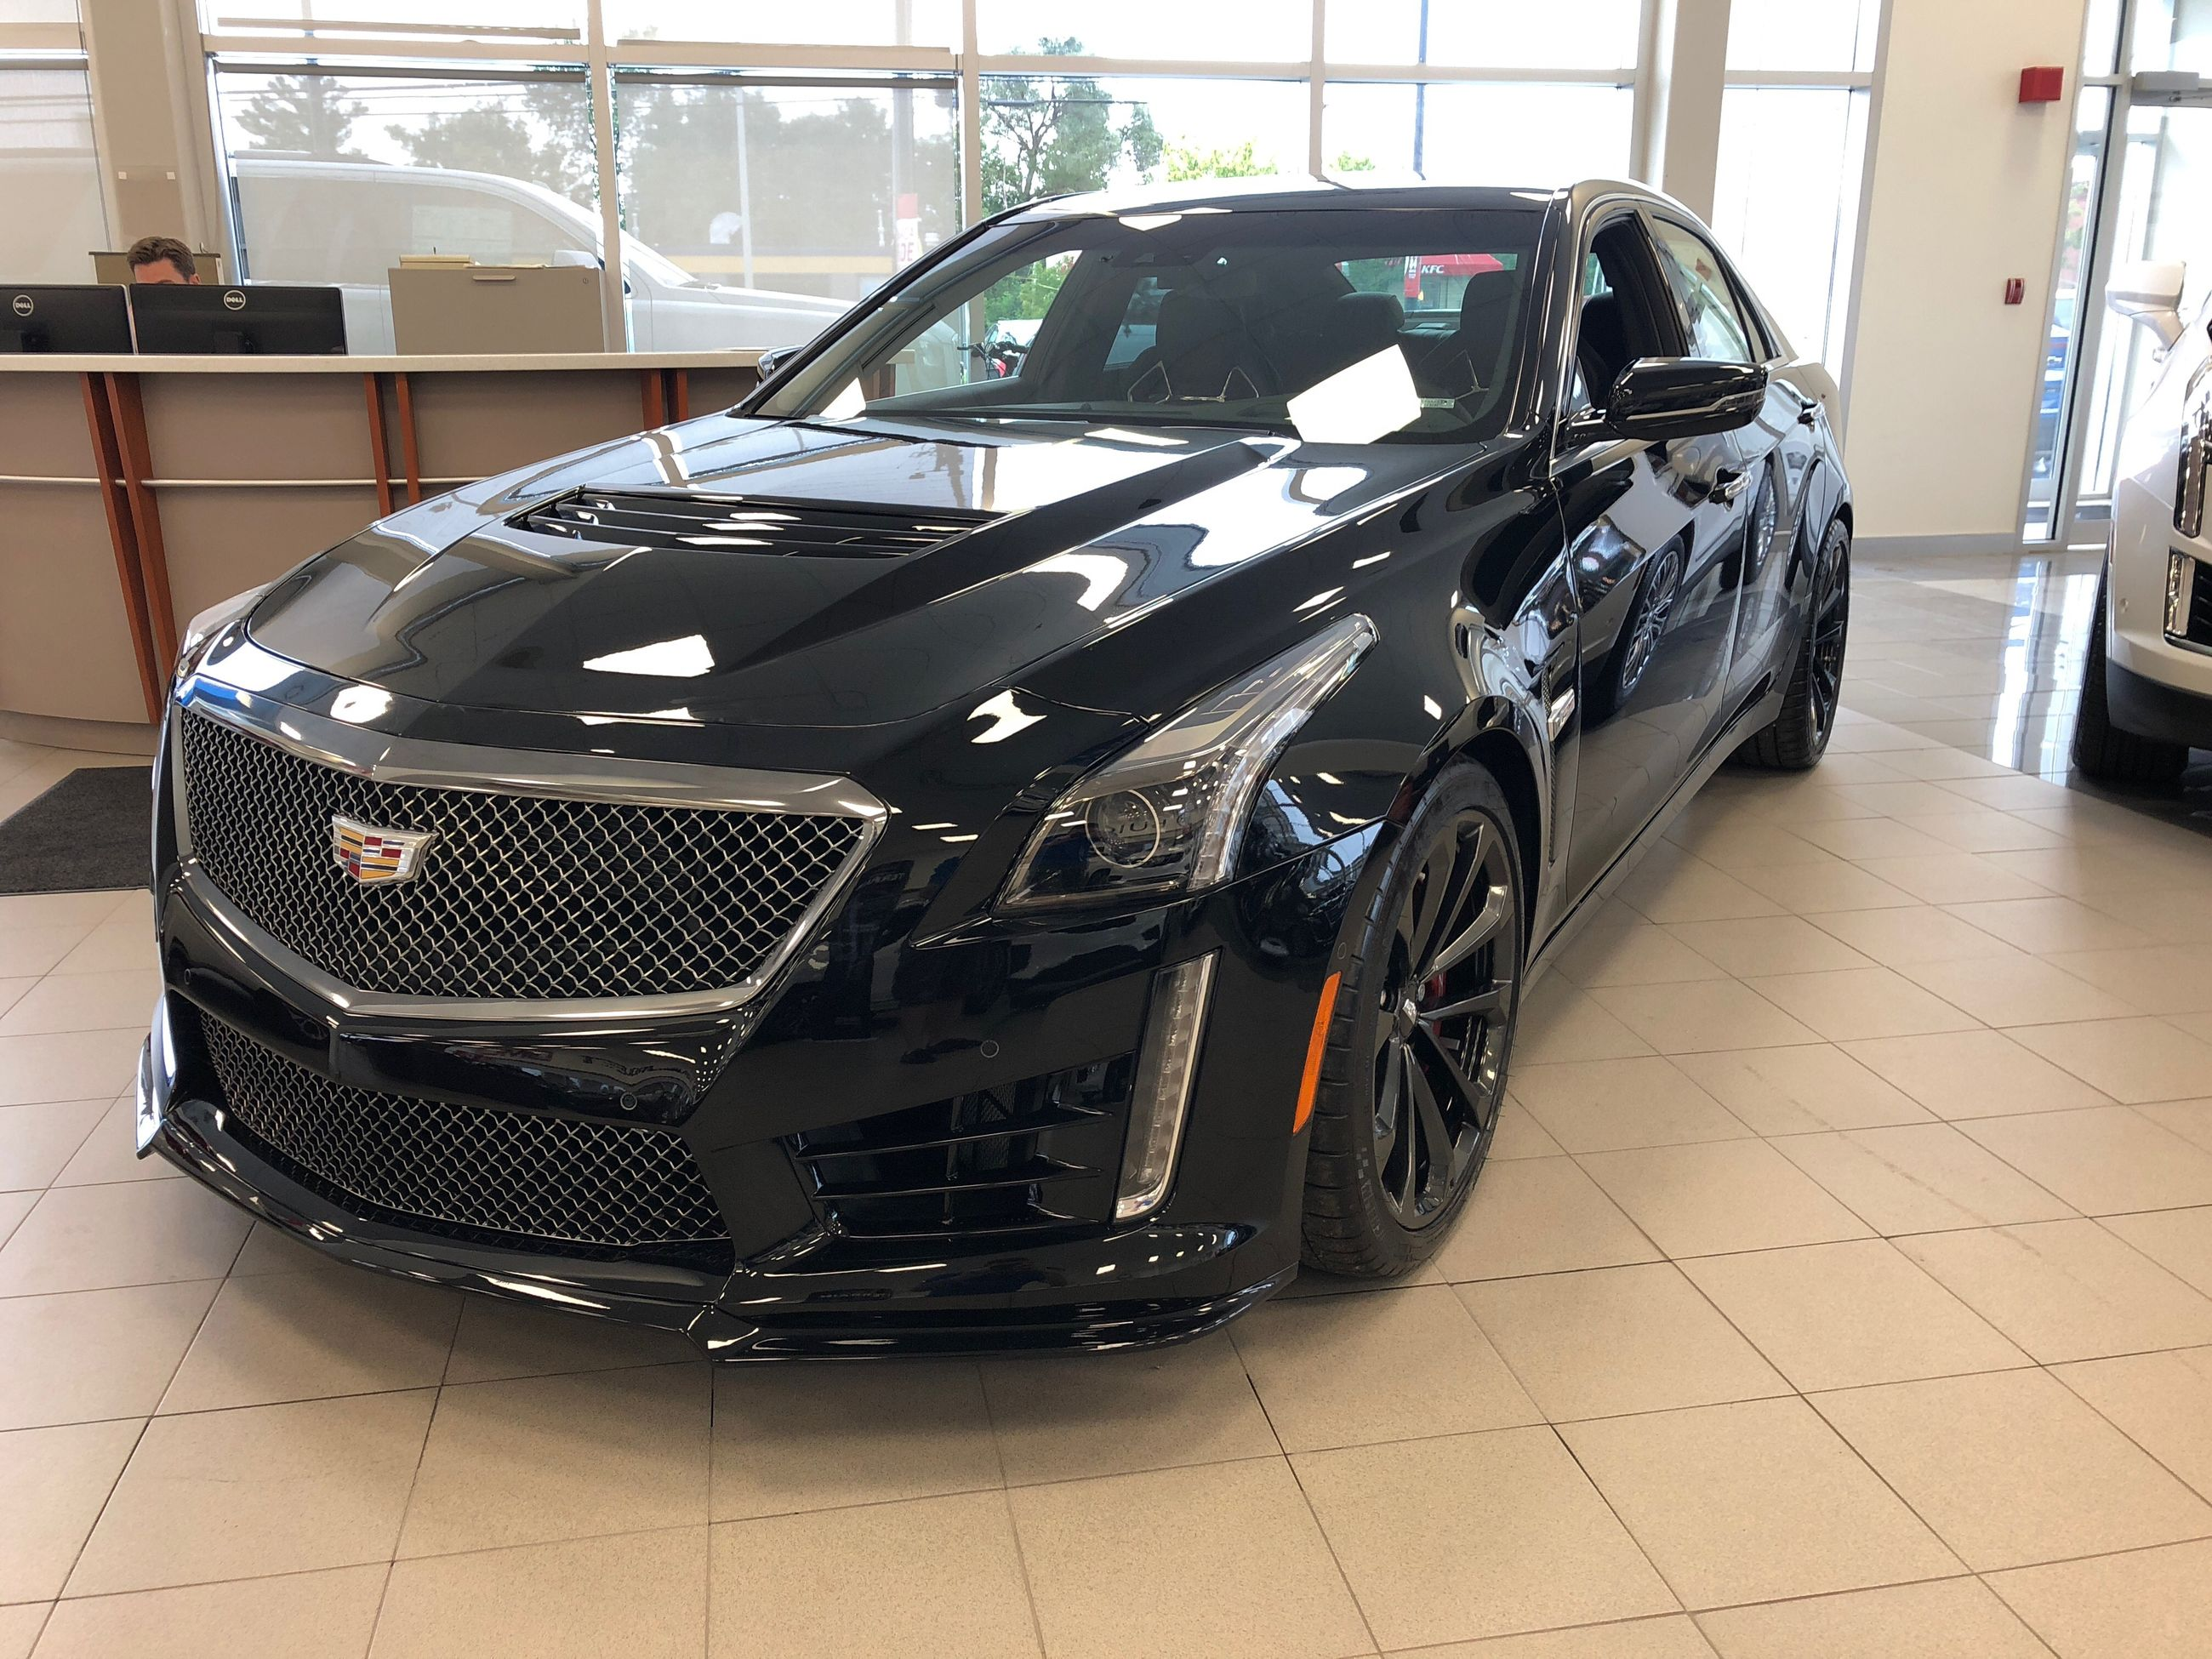 New 2019 Cadillac CTS-V CTS-V for Sale - $103275.0 ...